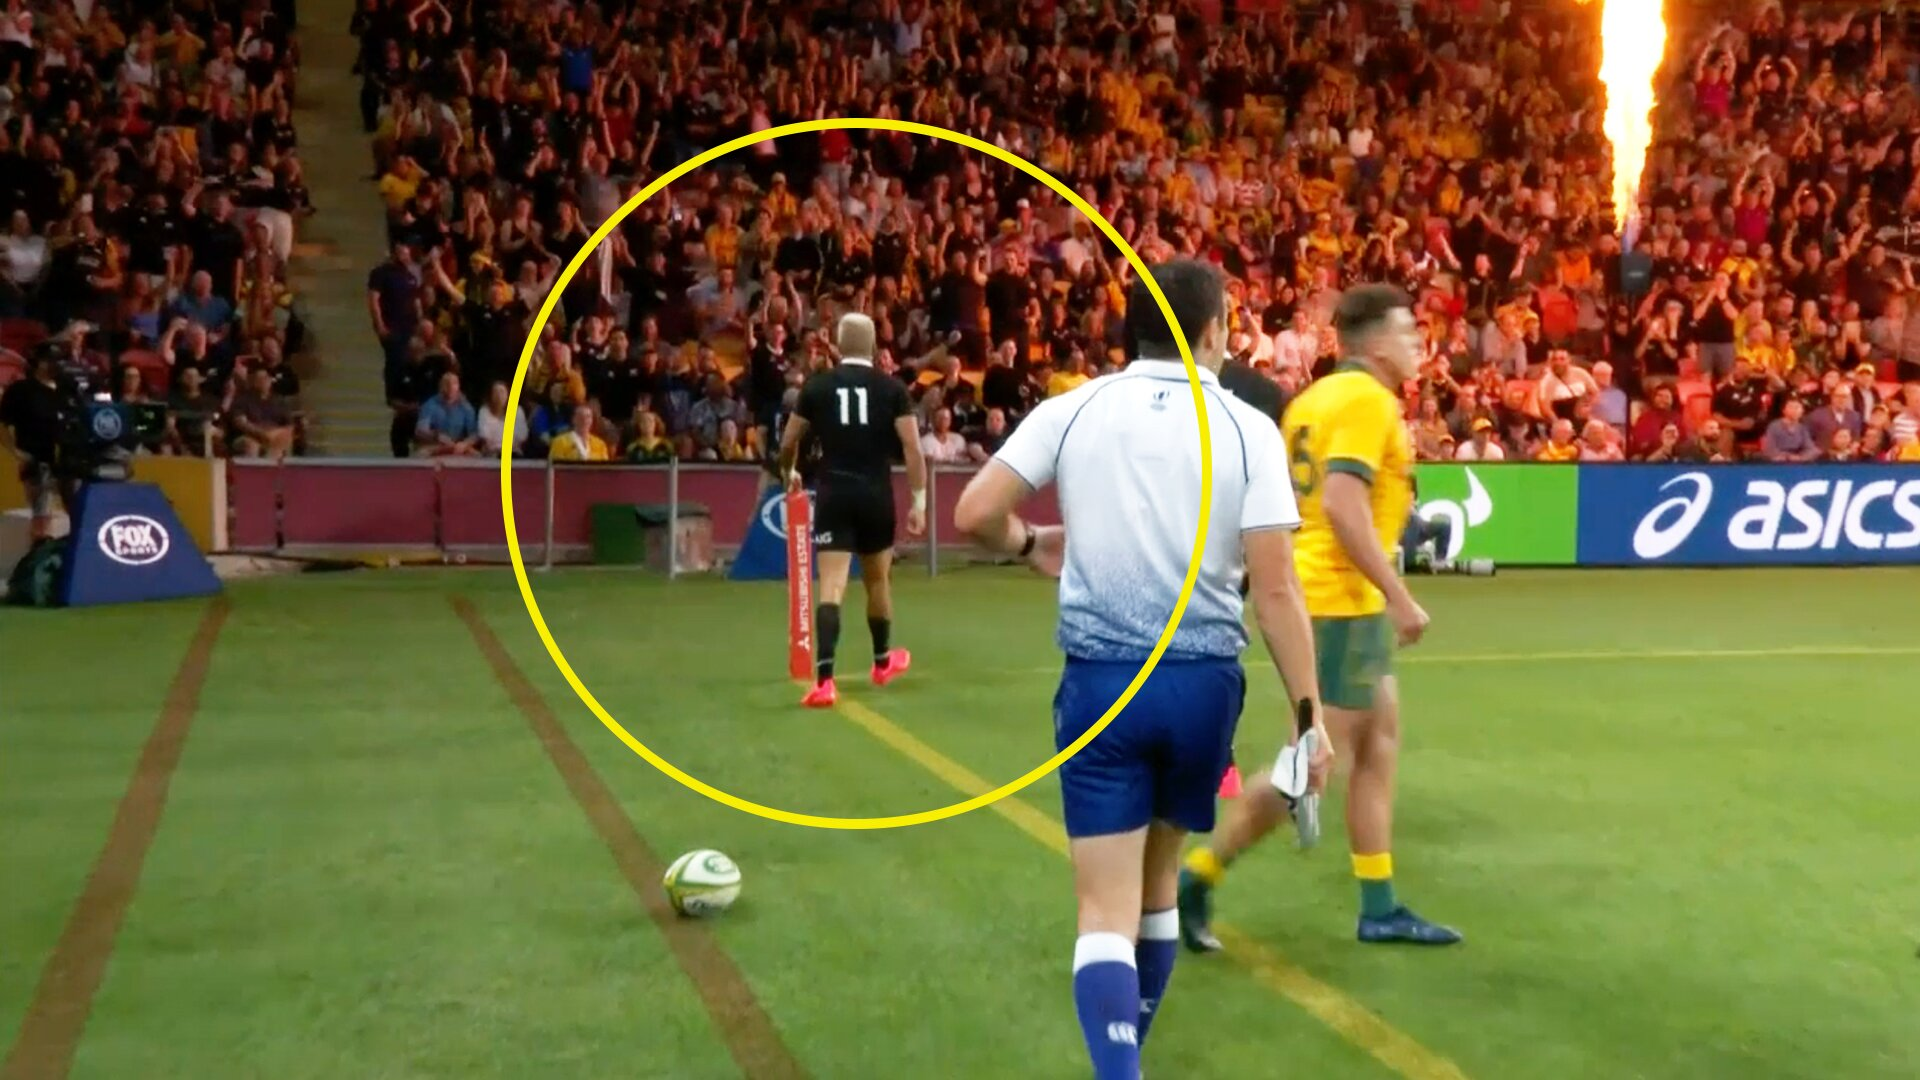 Fans furious with Rieko Ioane after controversial try celebration in today's Tri Nations clash